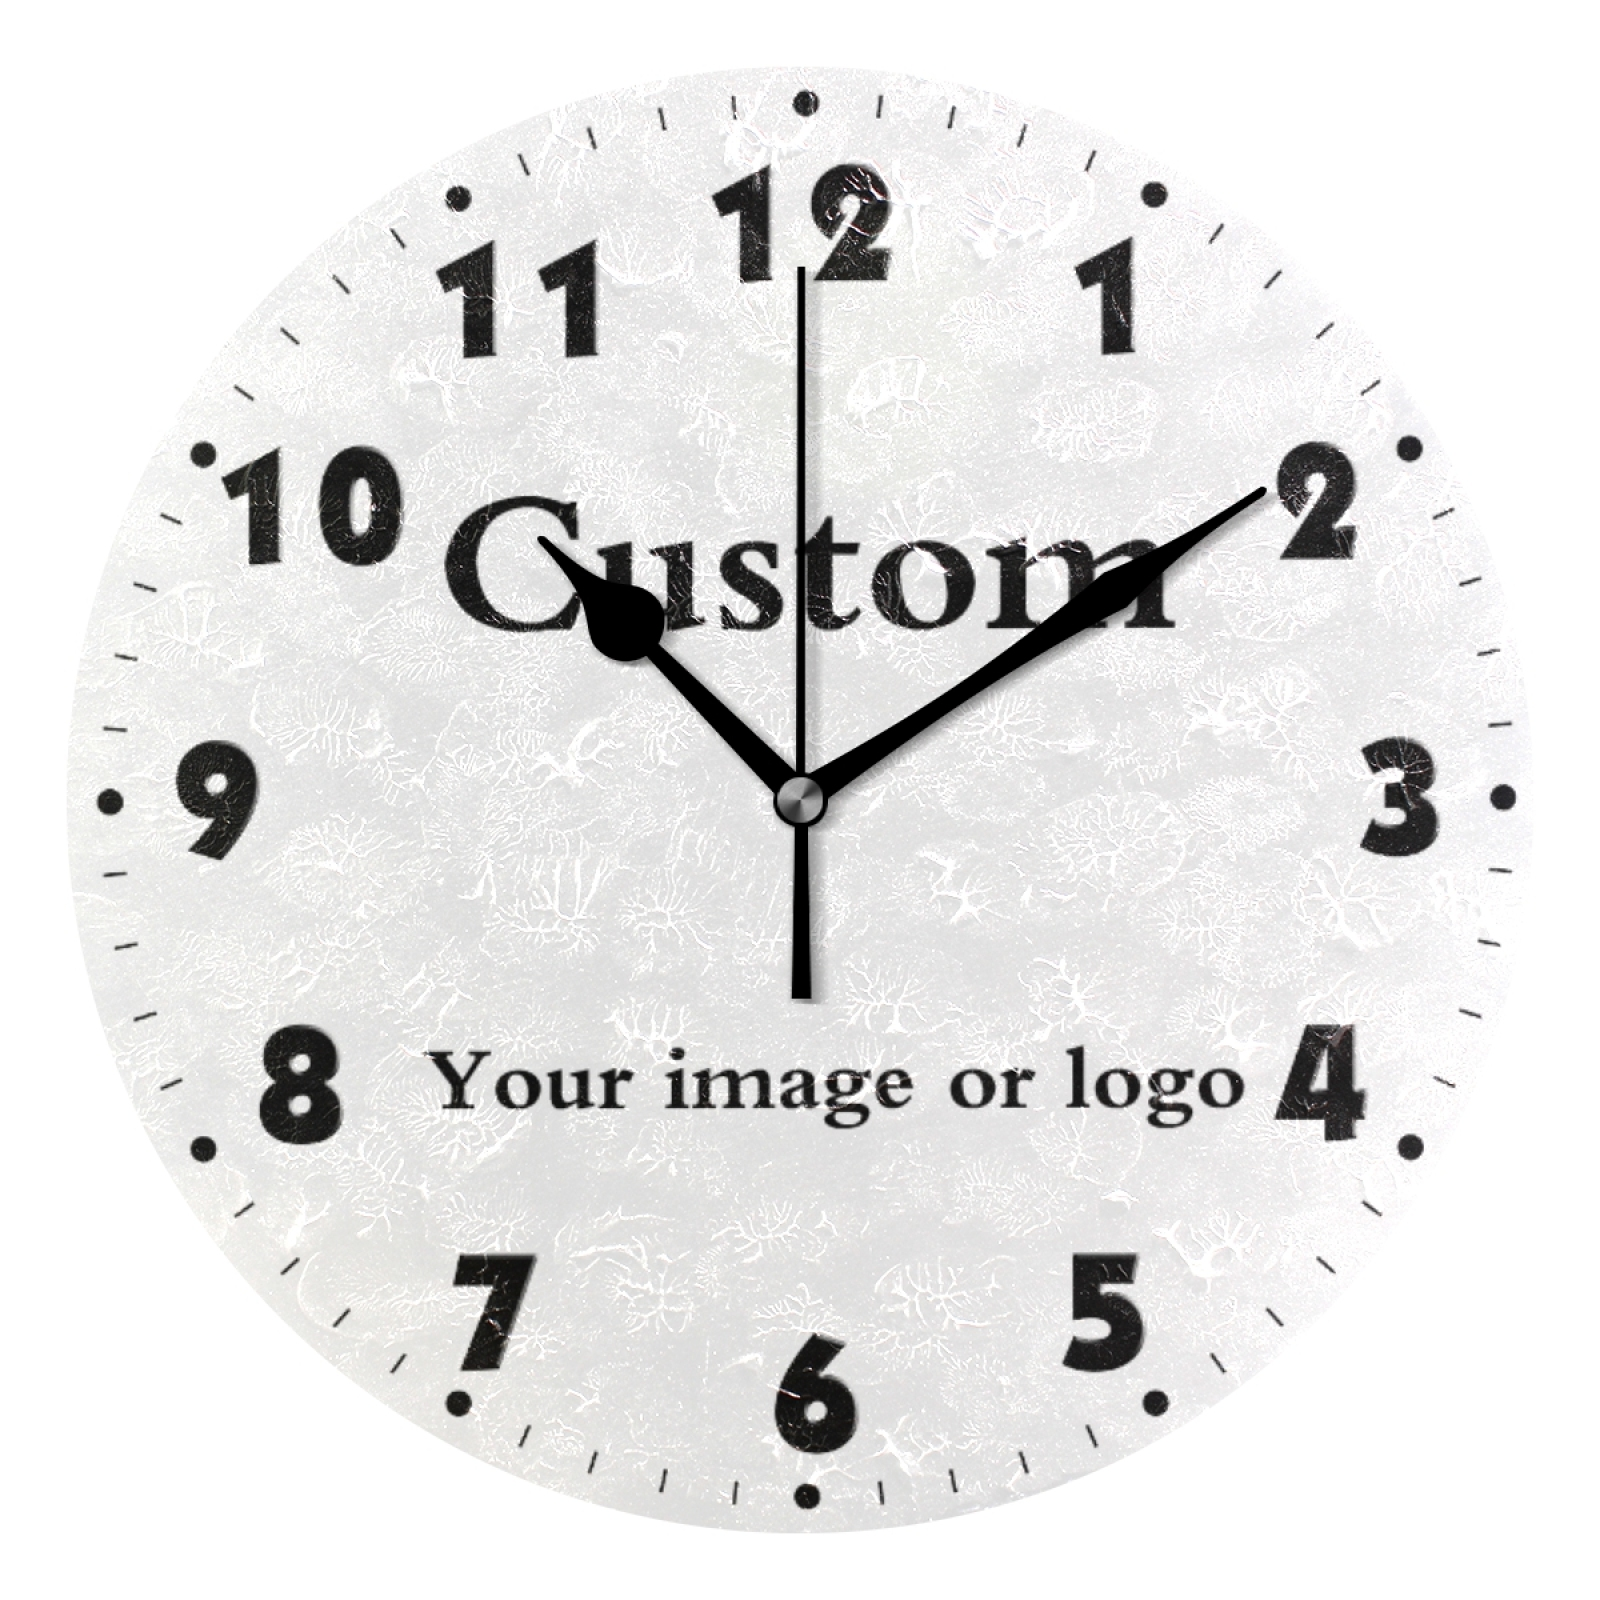 Custom Your Own Round Wall Clock Quiet Battery Operated Wall Watch Silent Non Ticking High Quality Tailor-Made Home Decor Clock